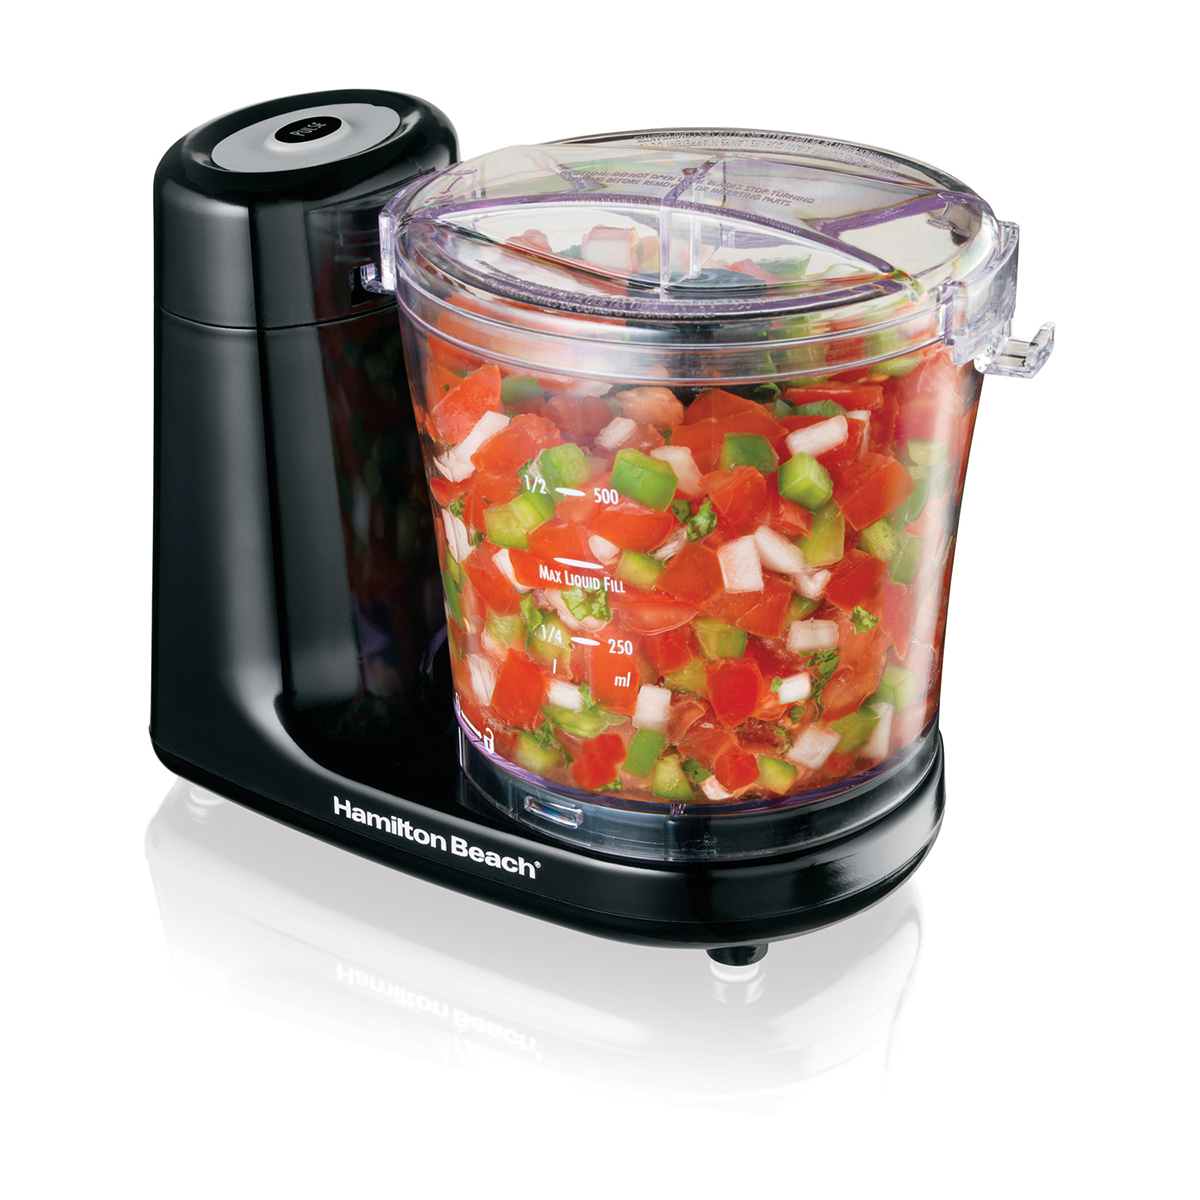 3 Cup Touchpad Food Chopper (72900)